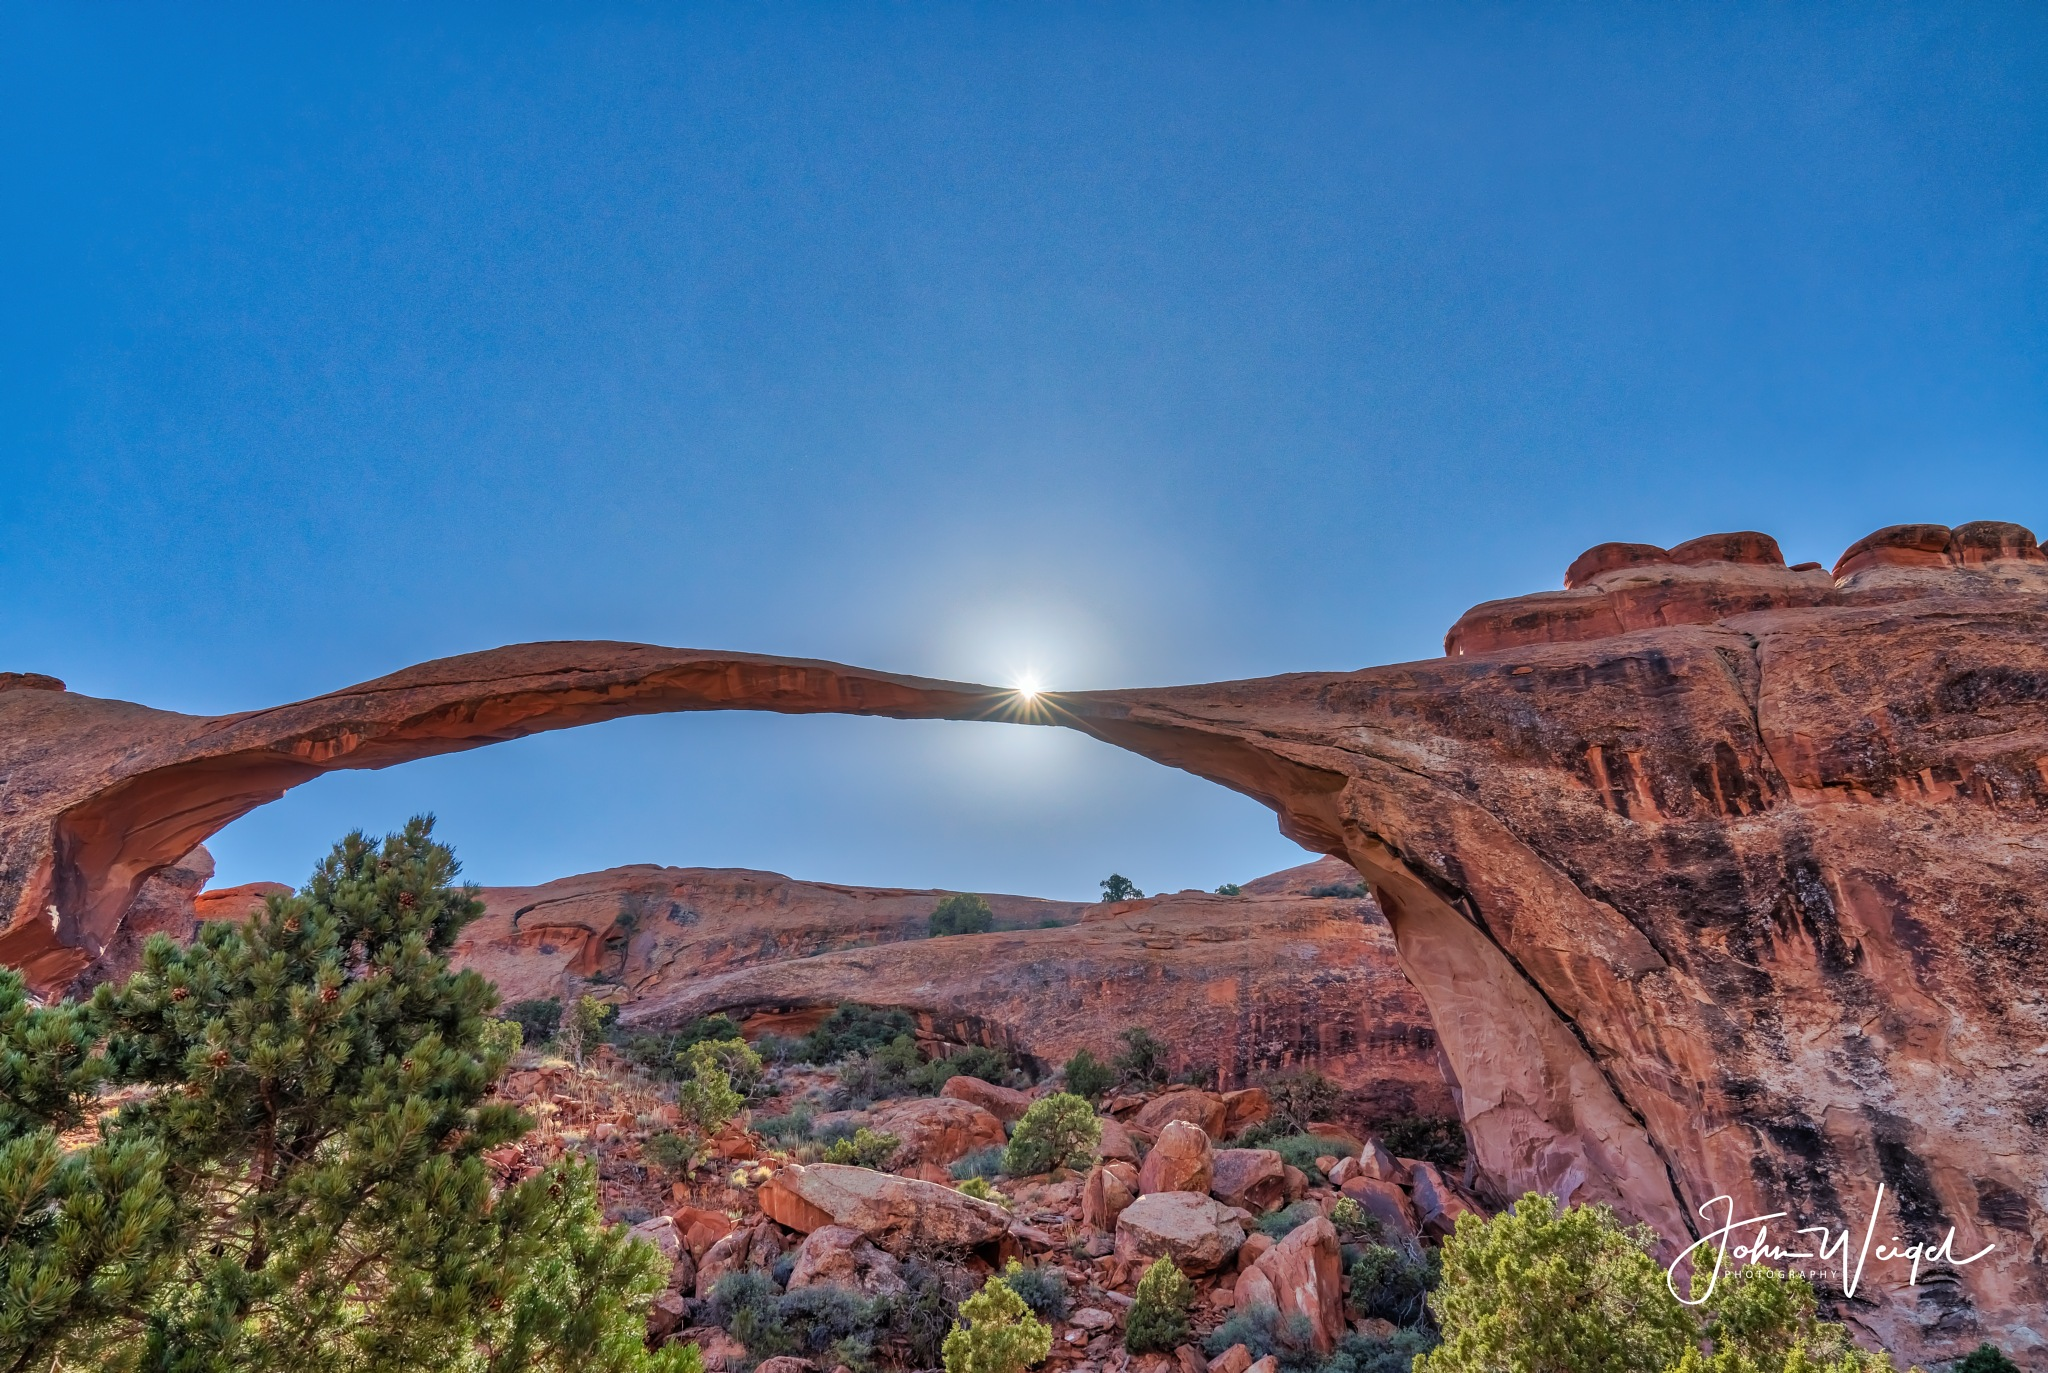 Landscape Arch - Arches National Park by John Weigel